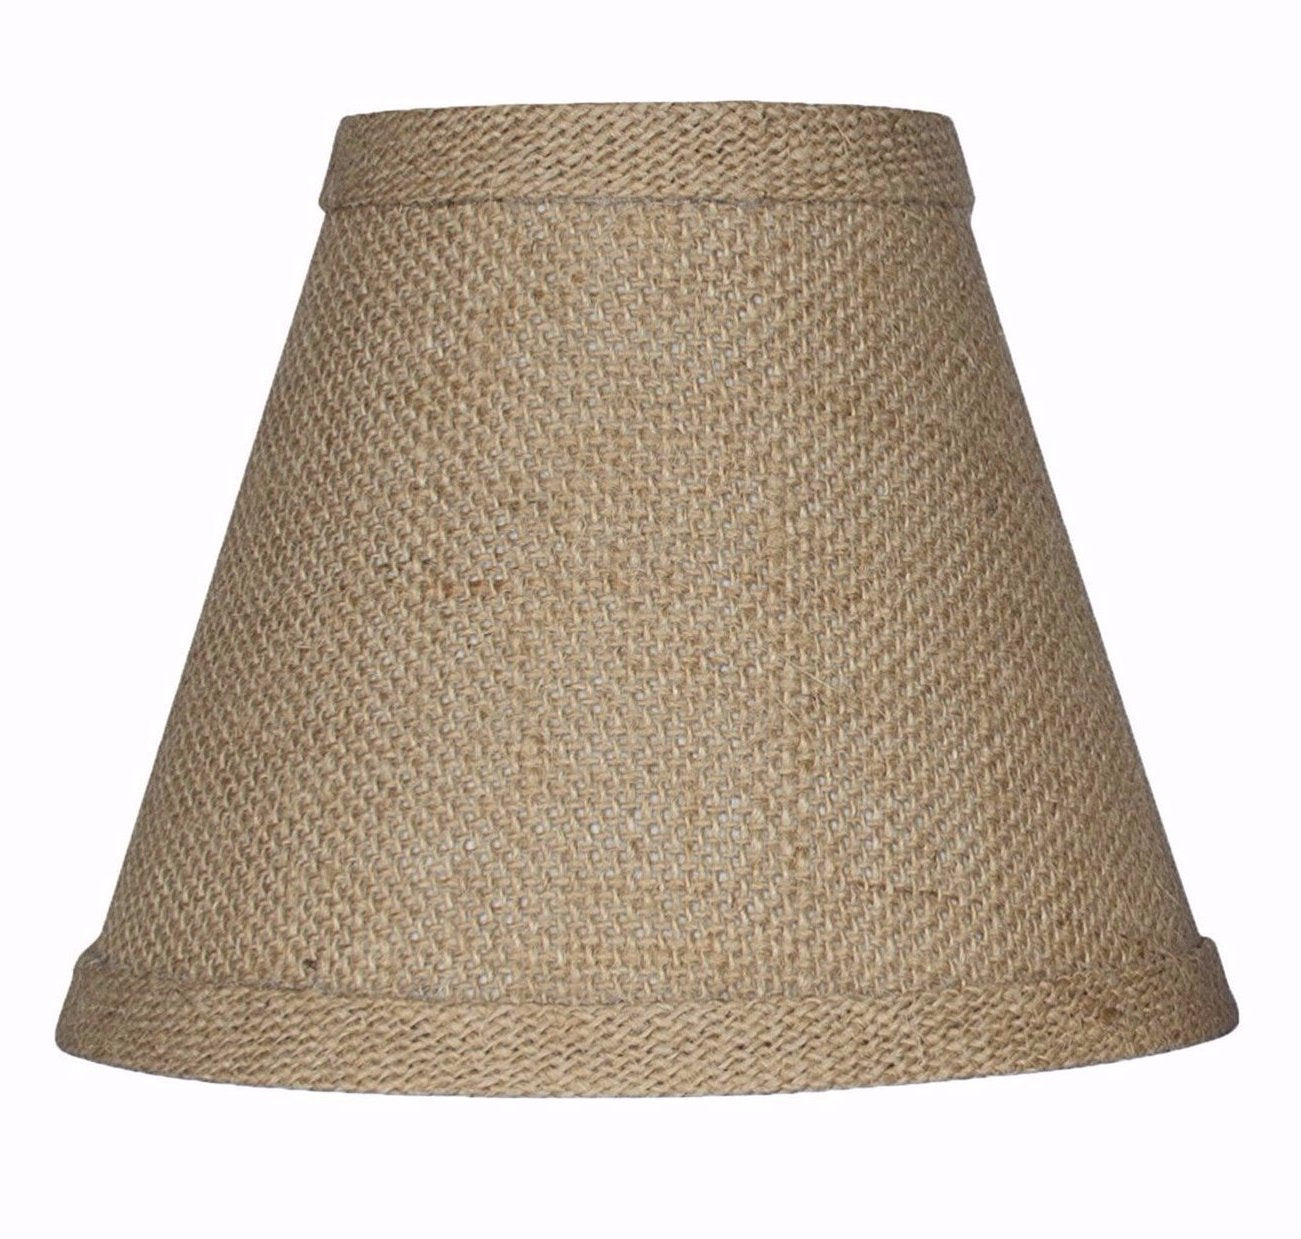 "Burlap Chandelier Lamp Shade - 5"" & 6"" Sizes"